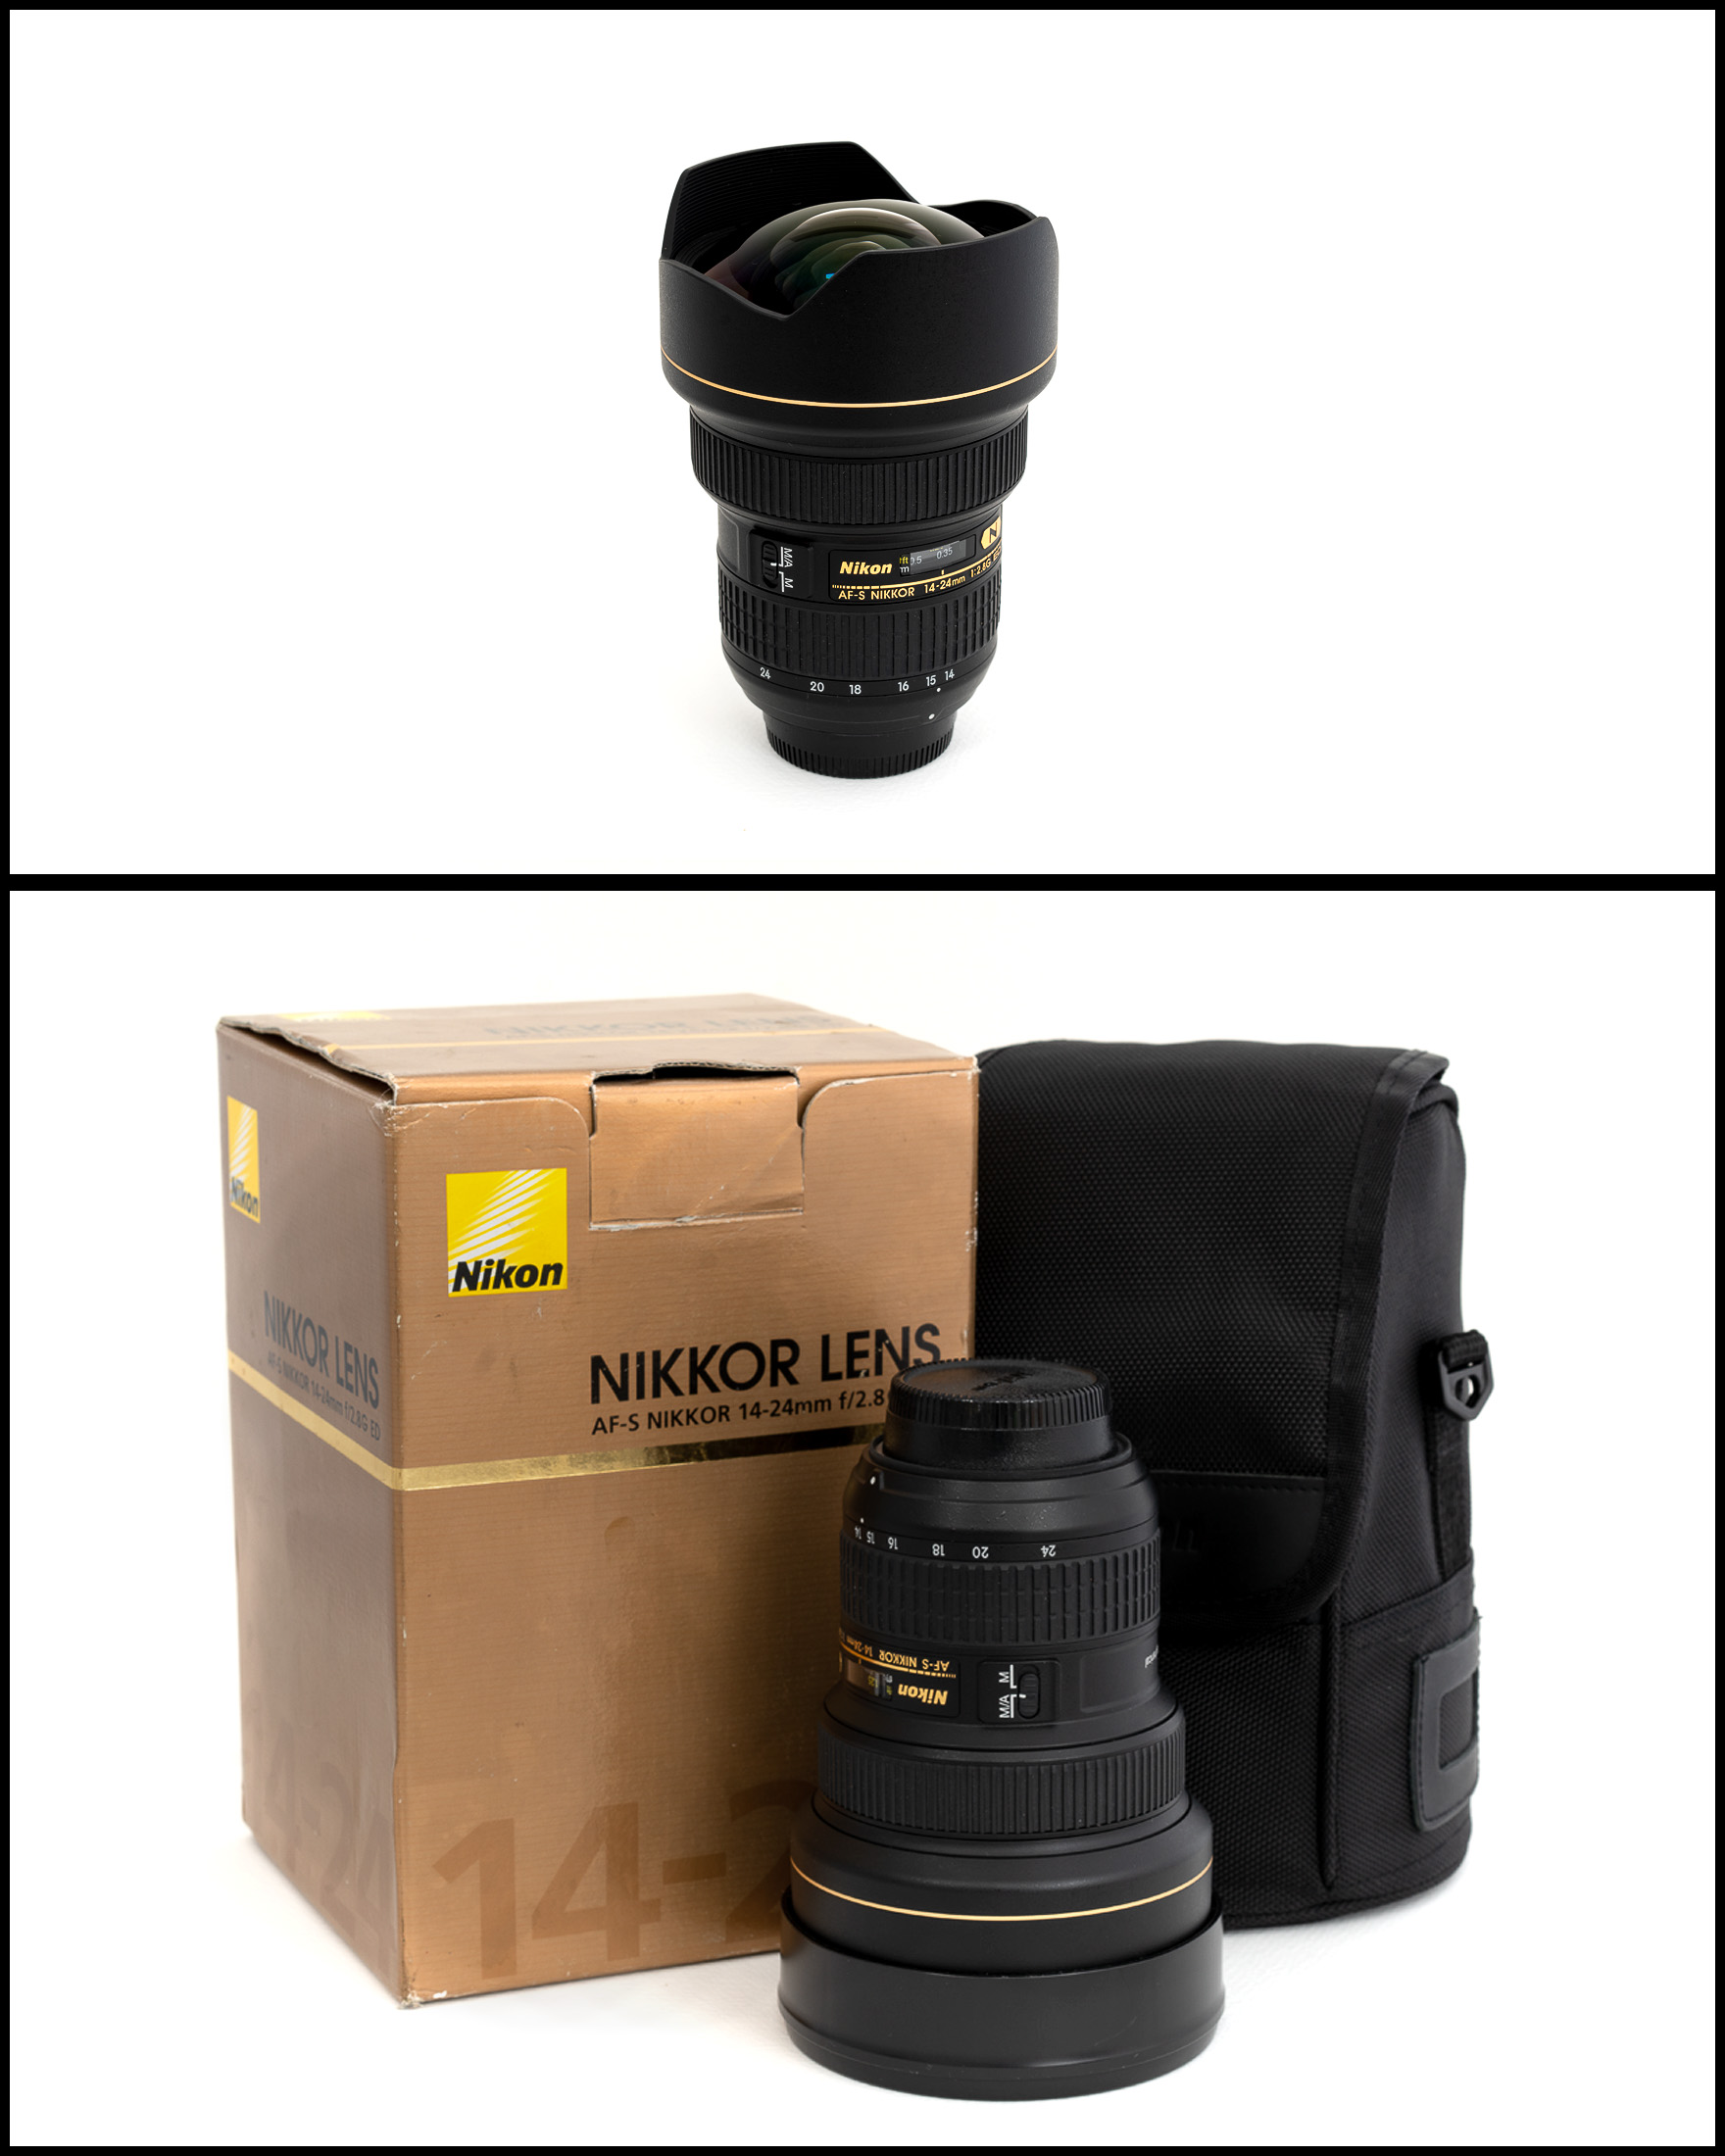 Nikkor/Nikon AF-S 14-24 f/2.8G ED    £1050   In excellent condition comes with front and rear caps, manual, pouch and original box.